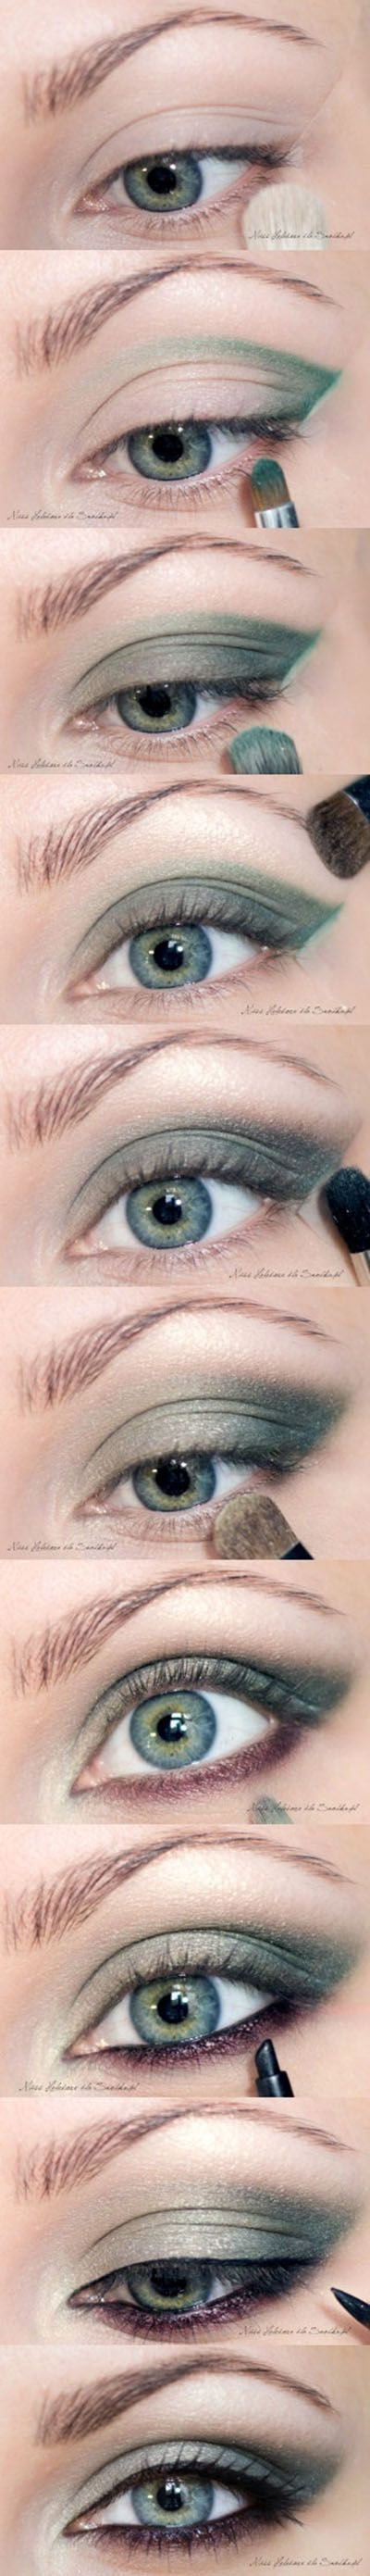 See more interesting makeup tricks on http://pinmakeuptips.com/simple-trick-with-a-business-card/